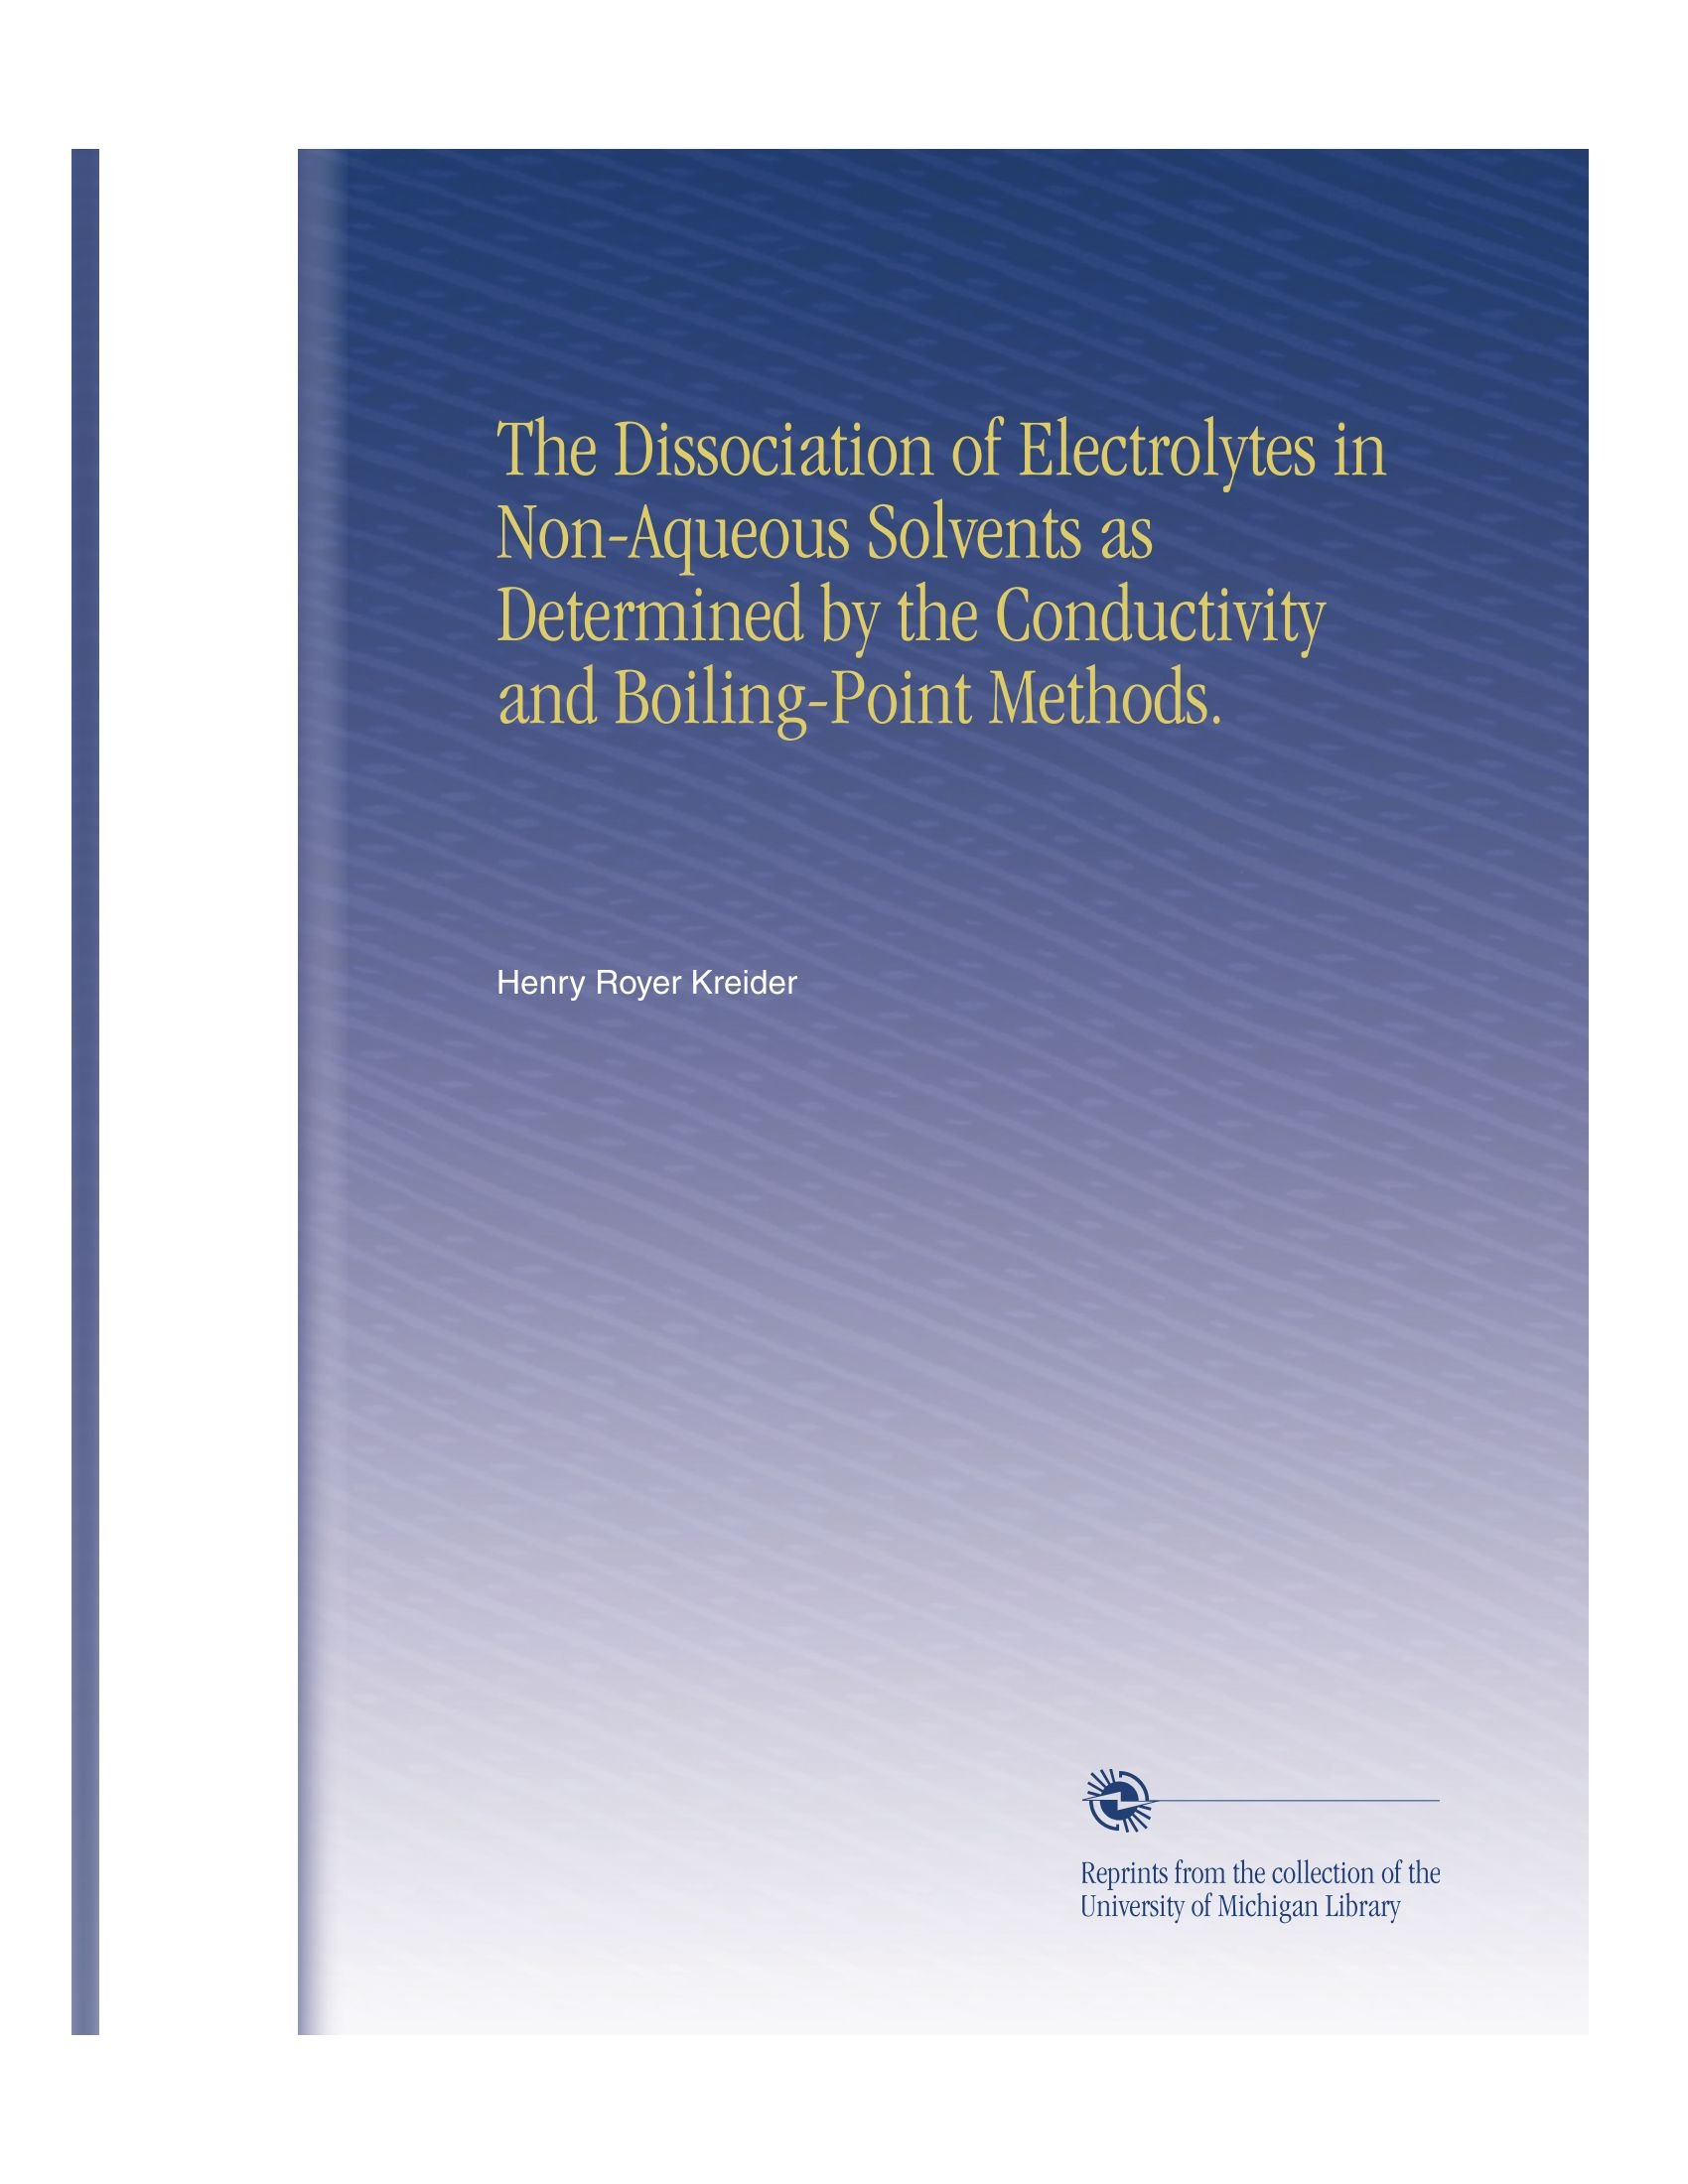 Read Online The Dissociation of Electrolytes in Non-Aqueous Solvents as Determined by the Conductivity and Boiling-Point Methods. pdf epub